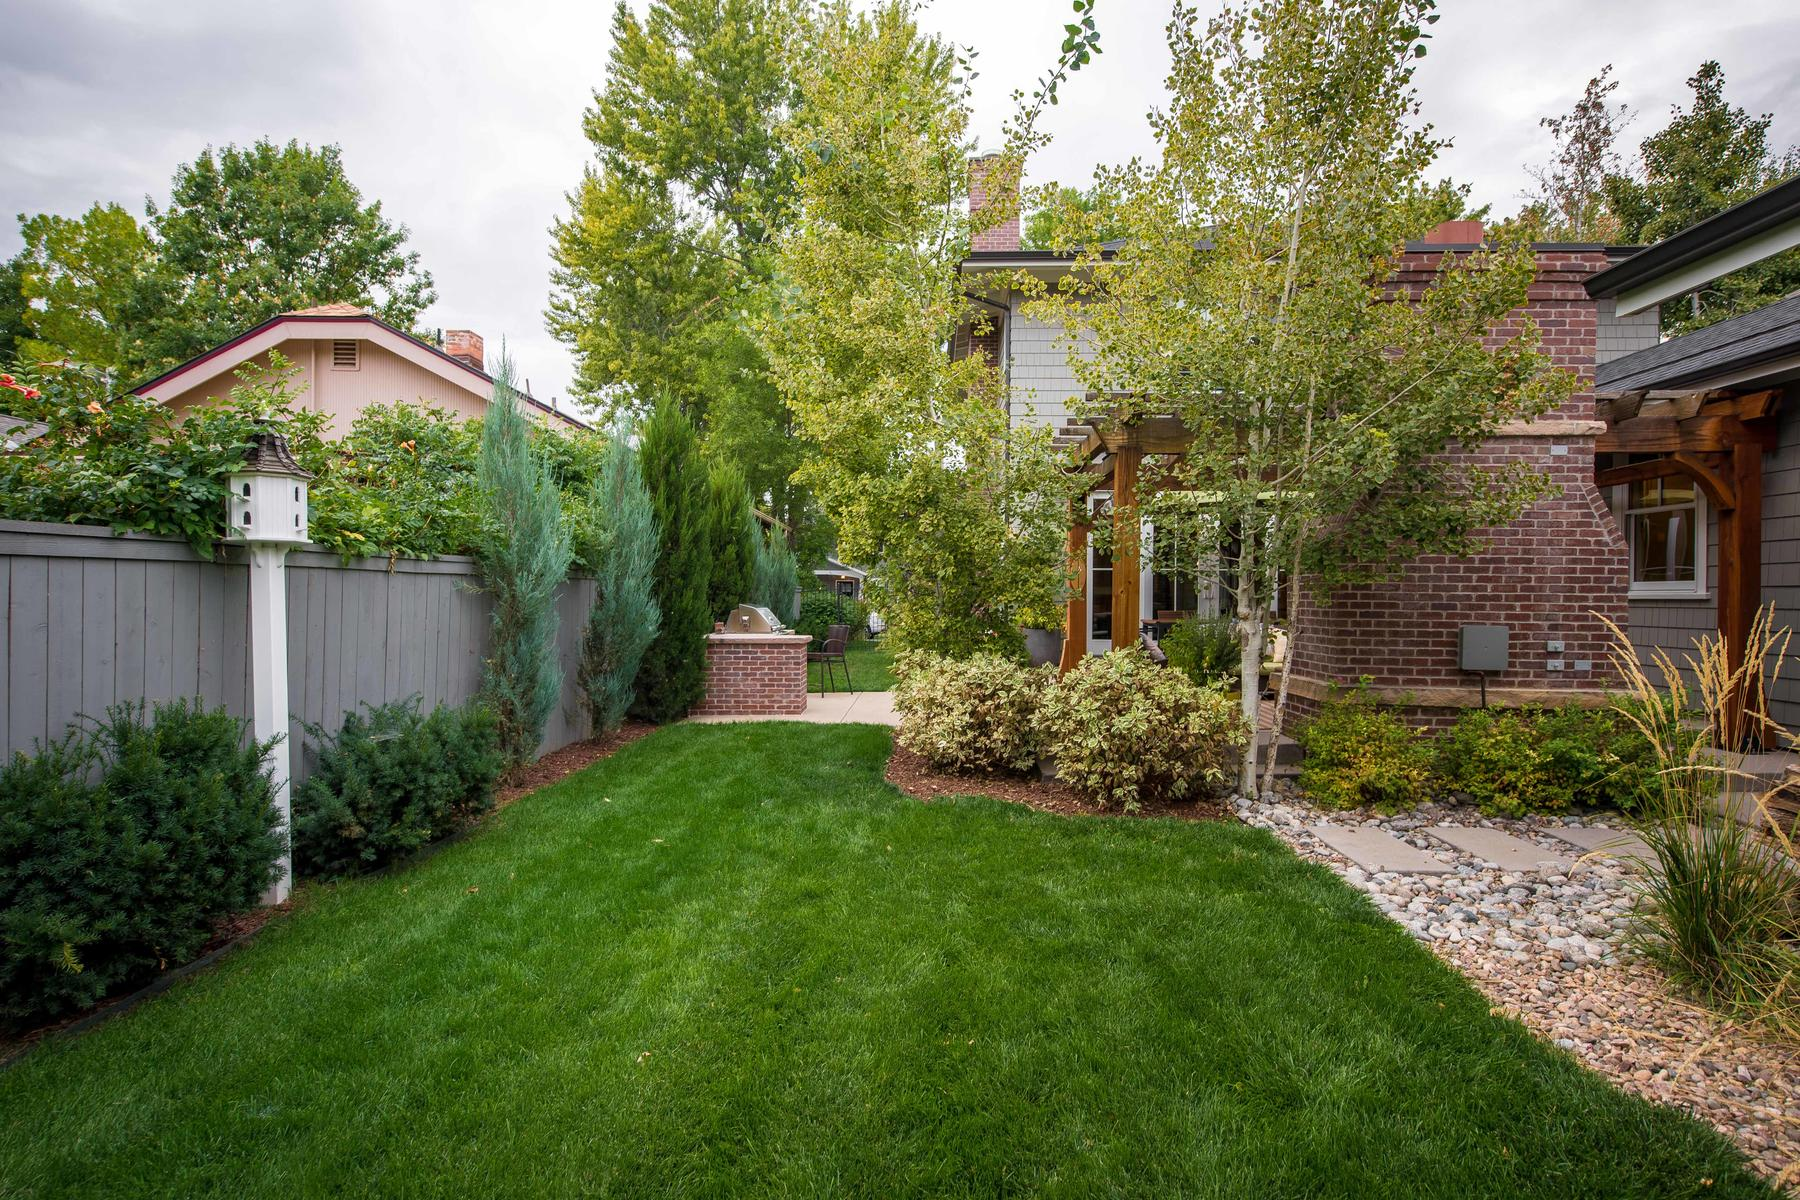 Additional photo for property listing at 964 South High Street 964 South High Street Denver, Colorado 80209 United States